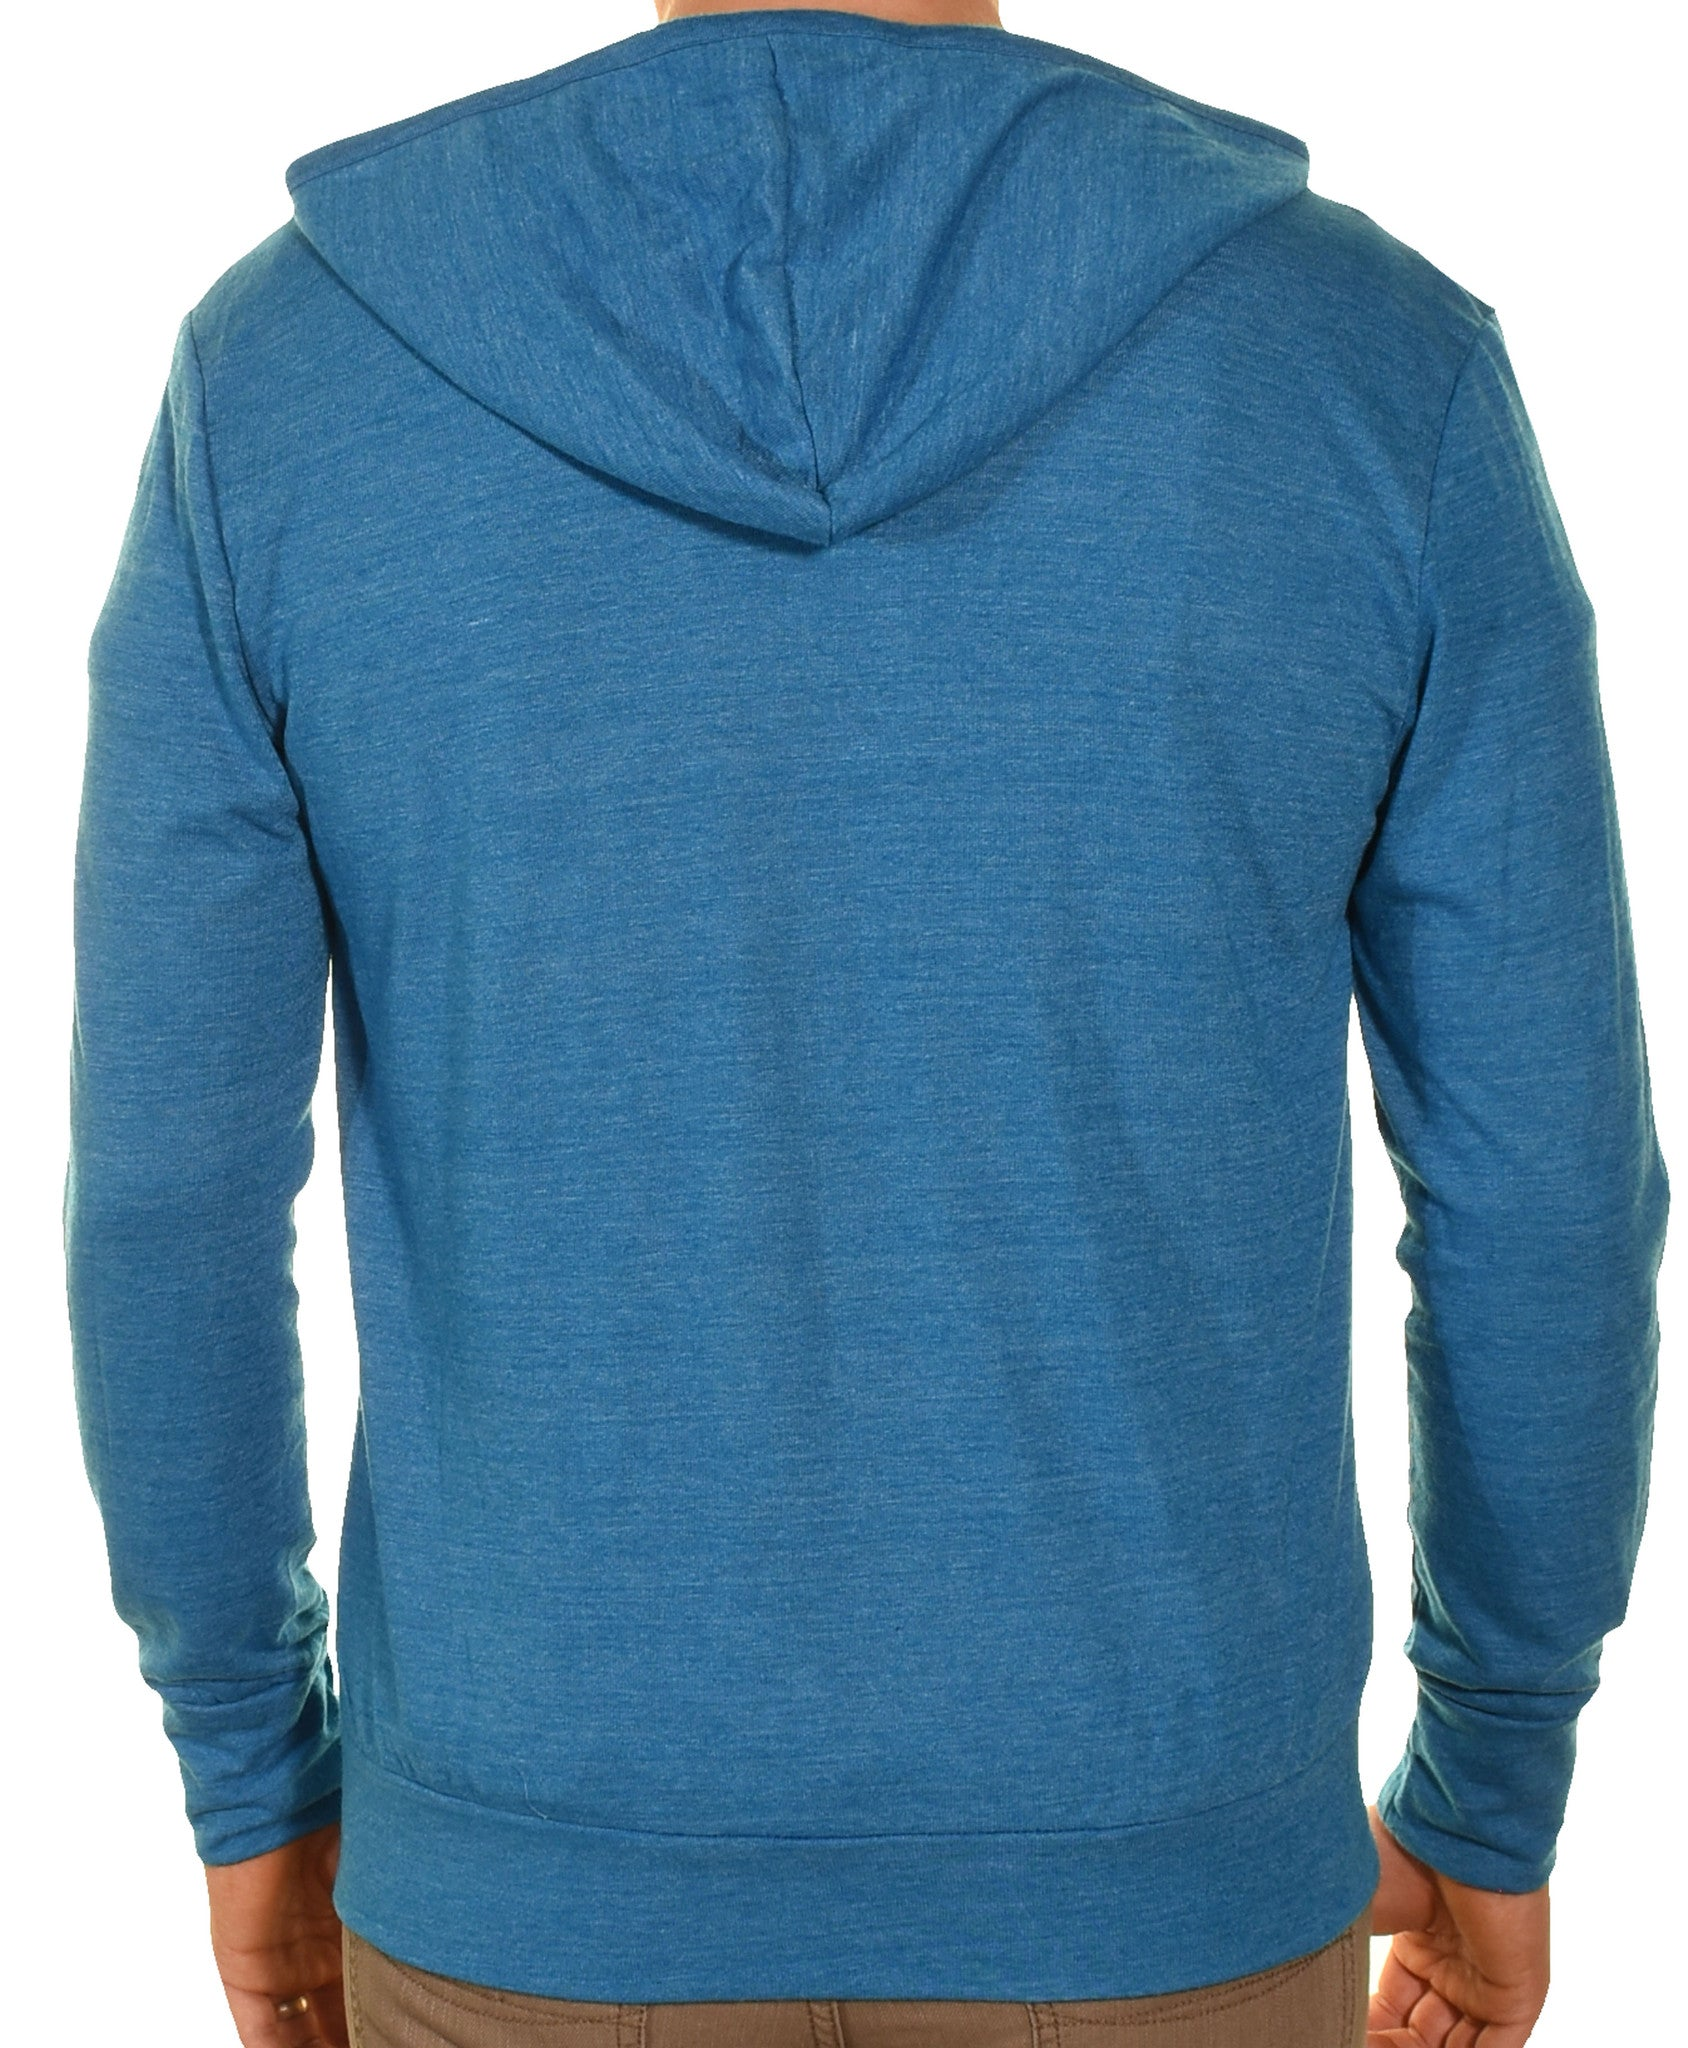 Easy Wear Mens Full Zip Ultralight Jersey Hooded Sweater | Blue,Jackets,Easy Wear - Discount Divas